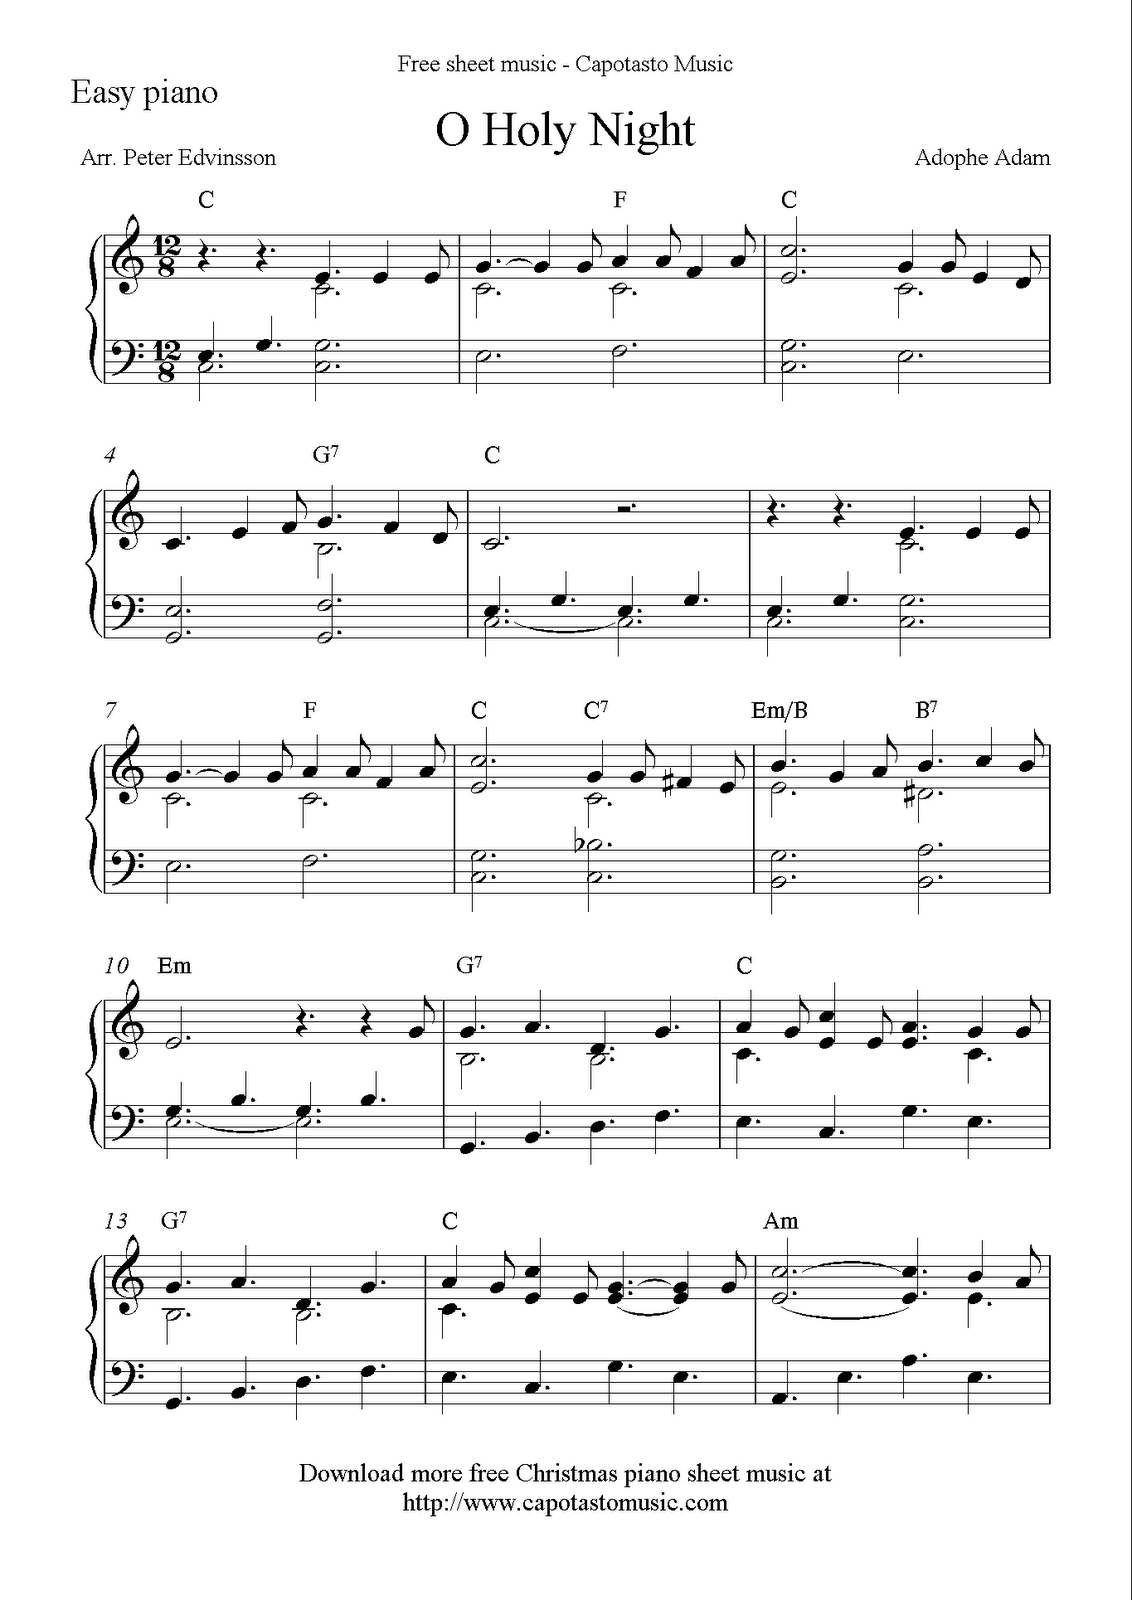 Free Sheet Music Scores: Free Easy Christmas Piano Sheet Music, O - Free Printable Christmas Sheet Music For Piano